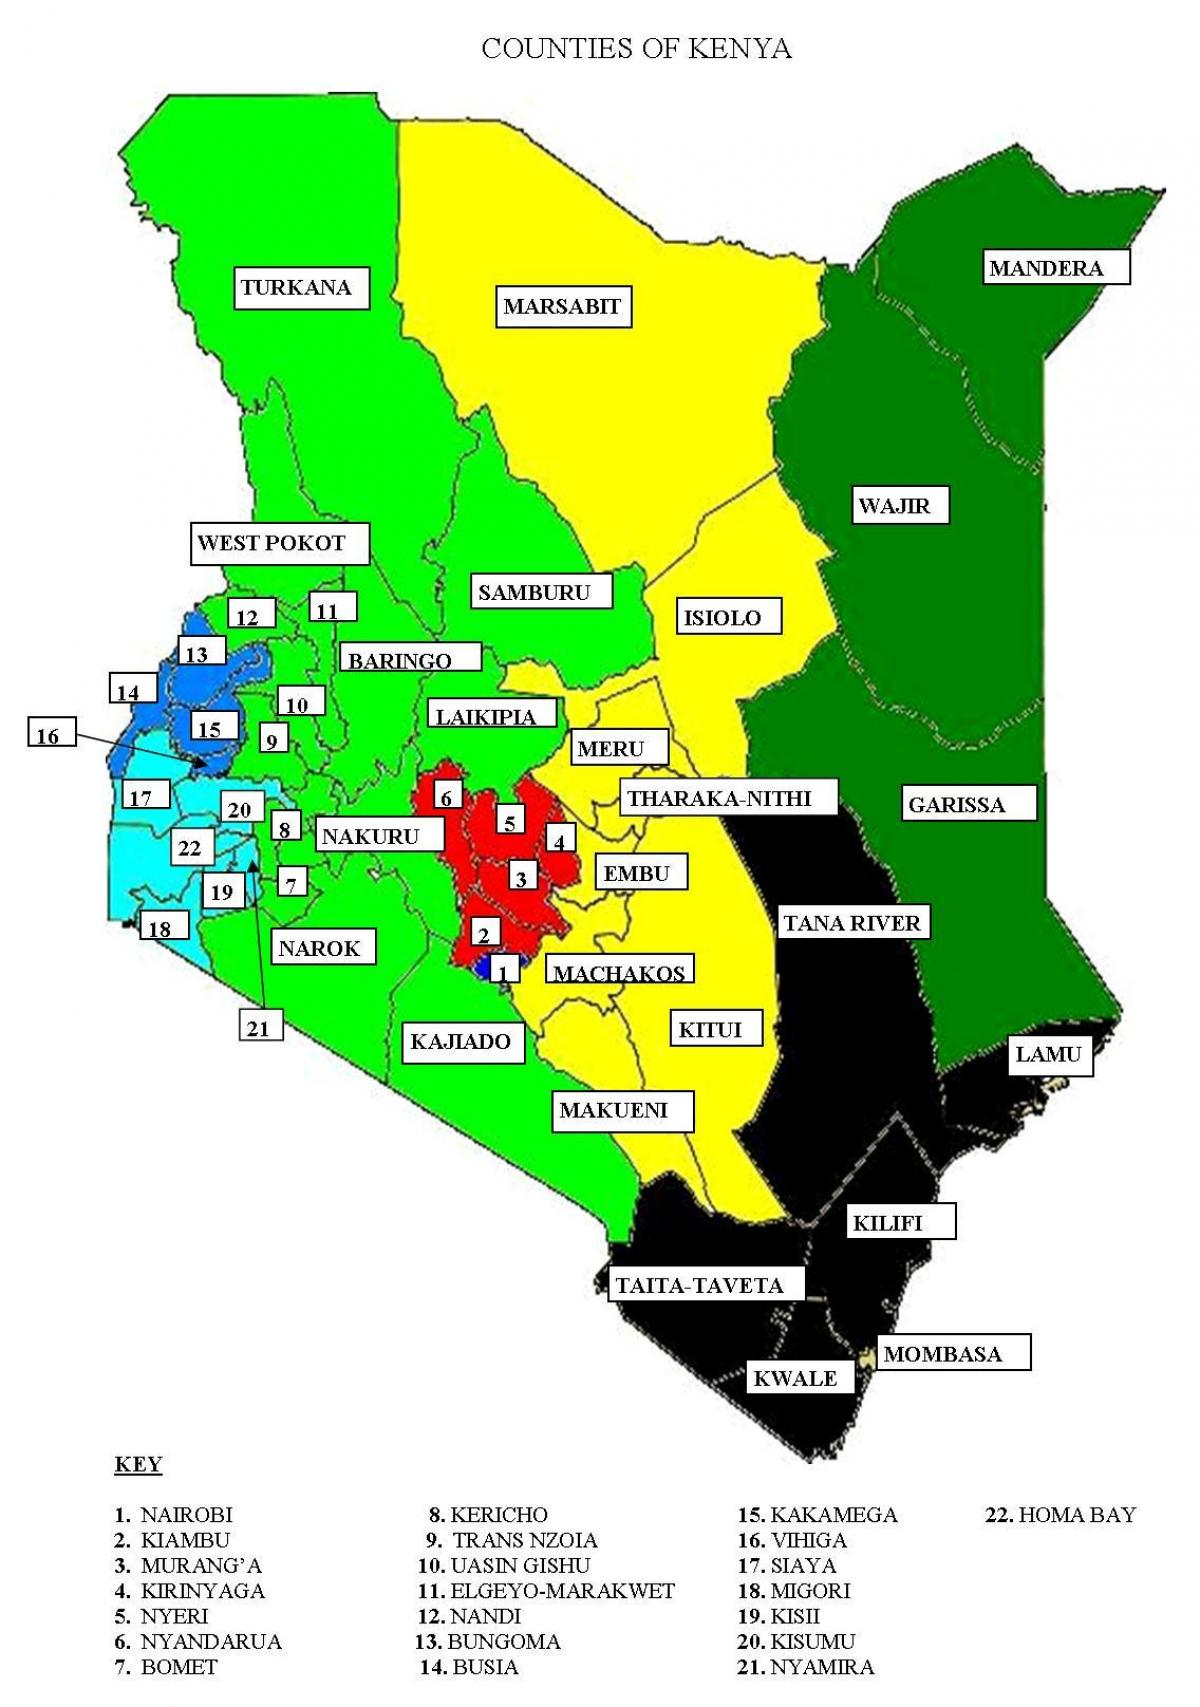 map of 47 counties in Kenya